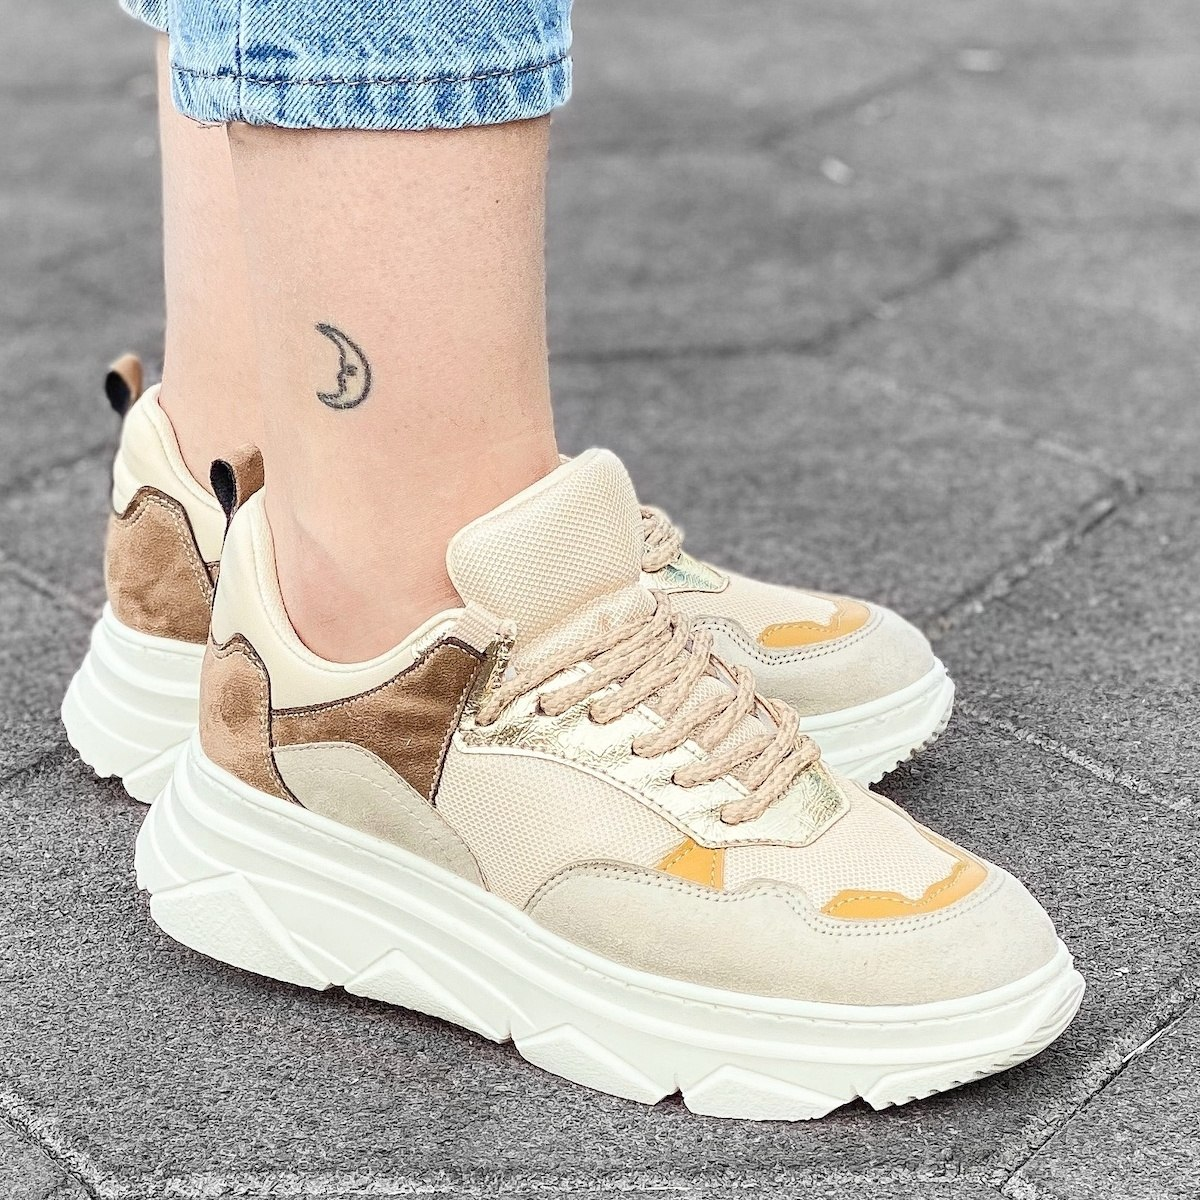 Women's High Sole Sneakers In Stone